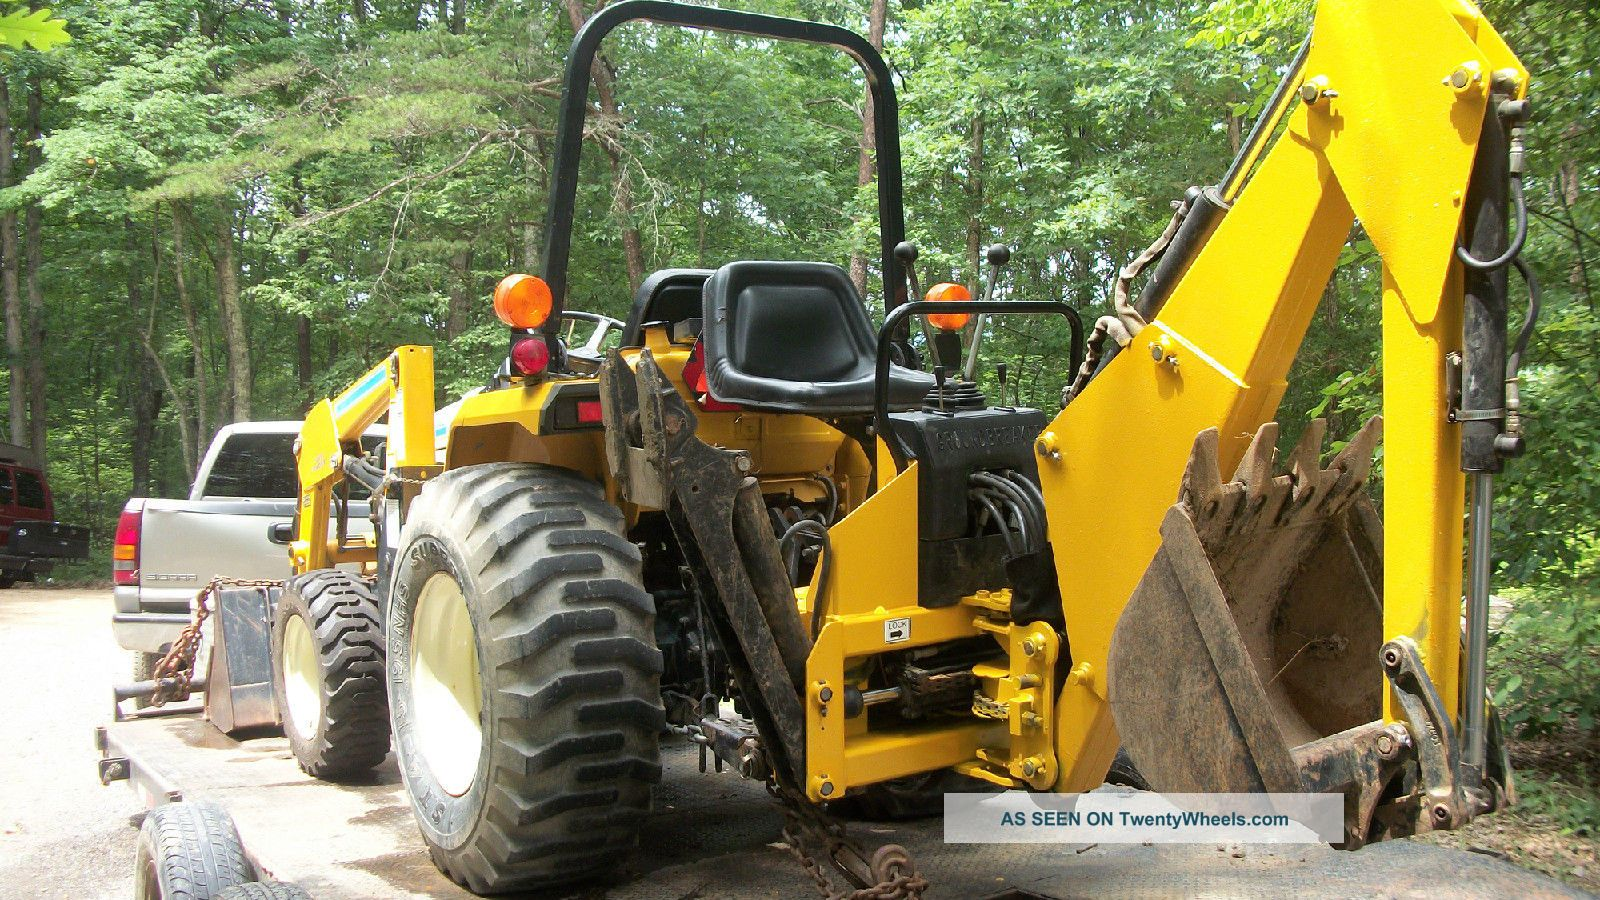 Tractor Loader Backhoe : Cub cadet compact tractor model with front loader and